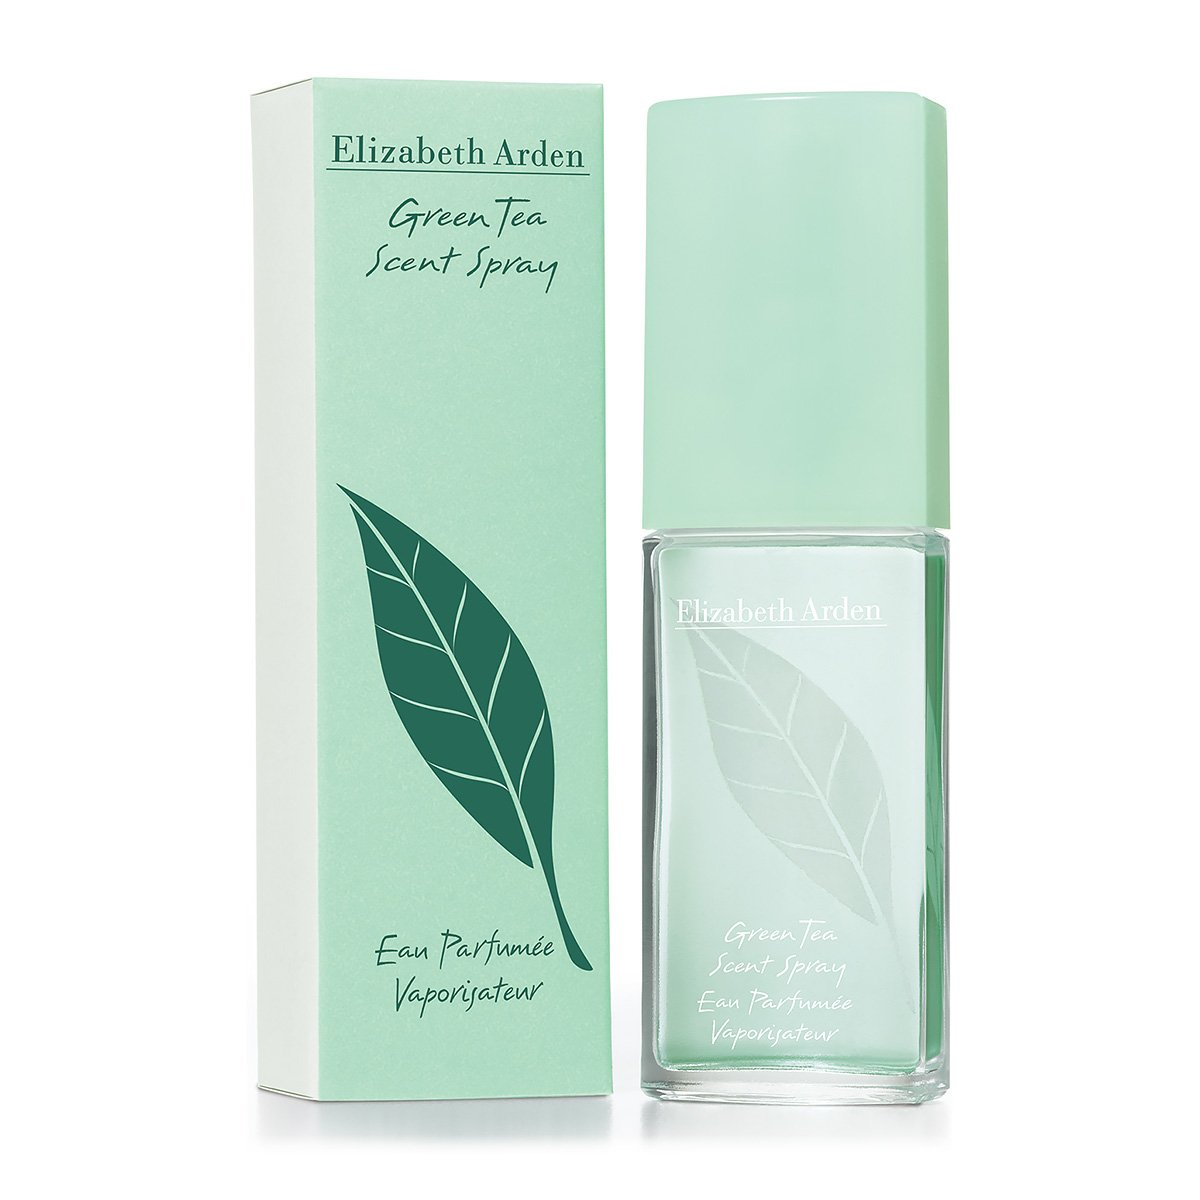 E.Arden Green Tea (L) edp